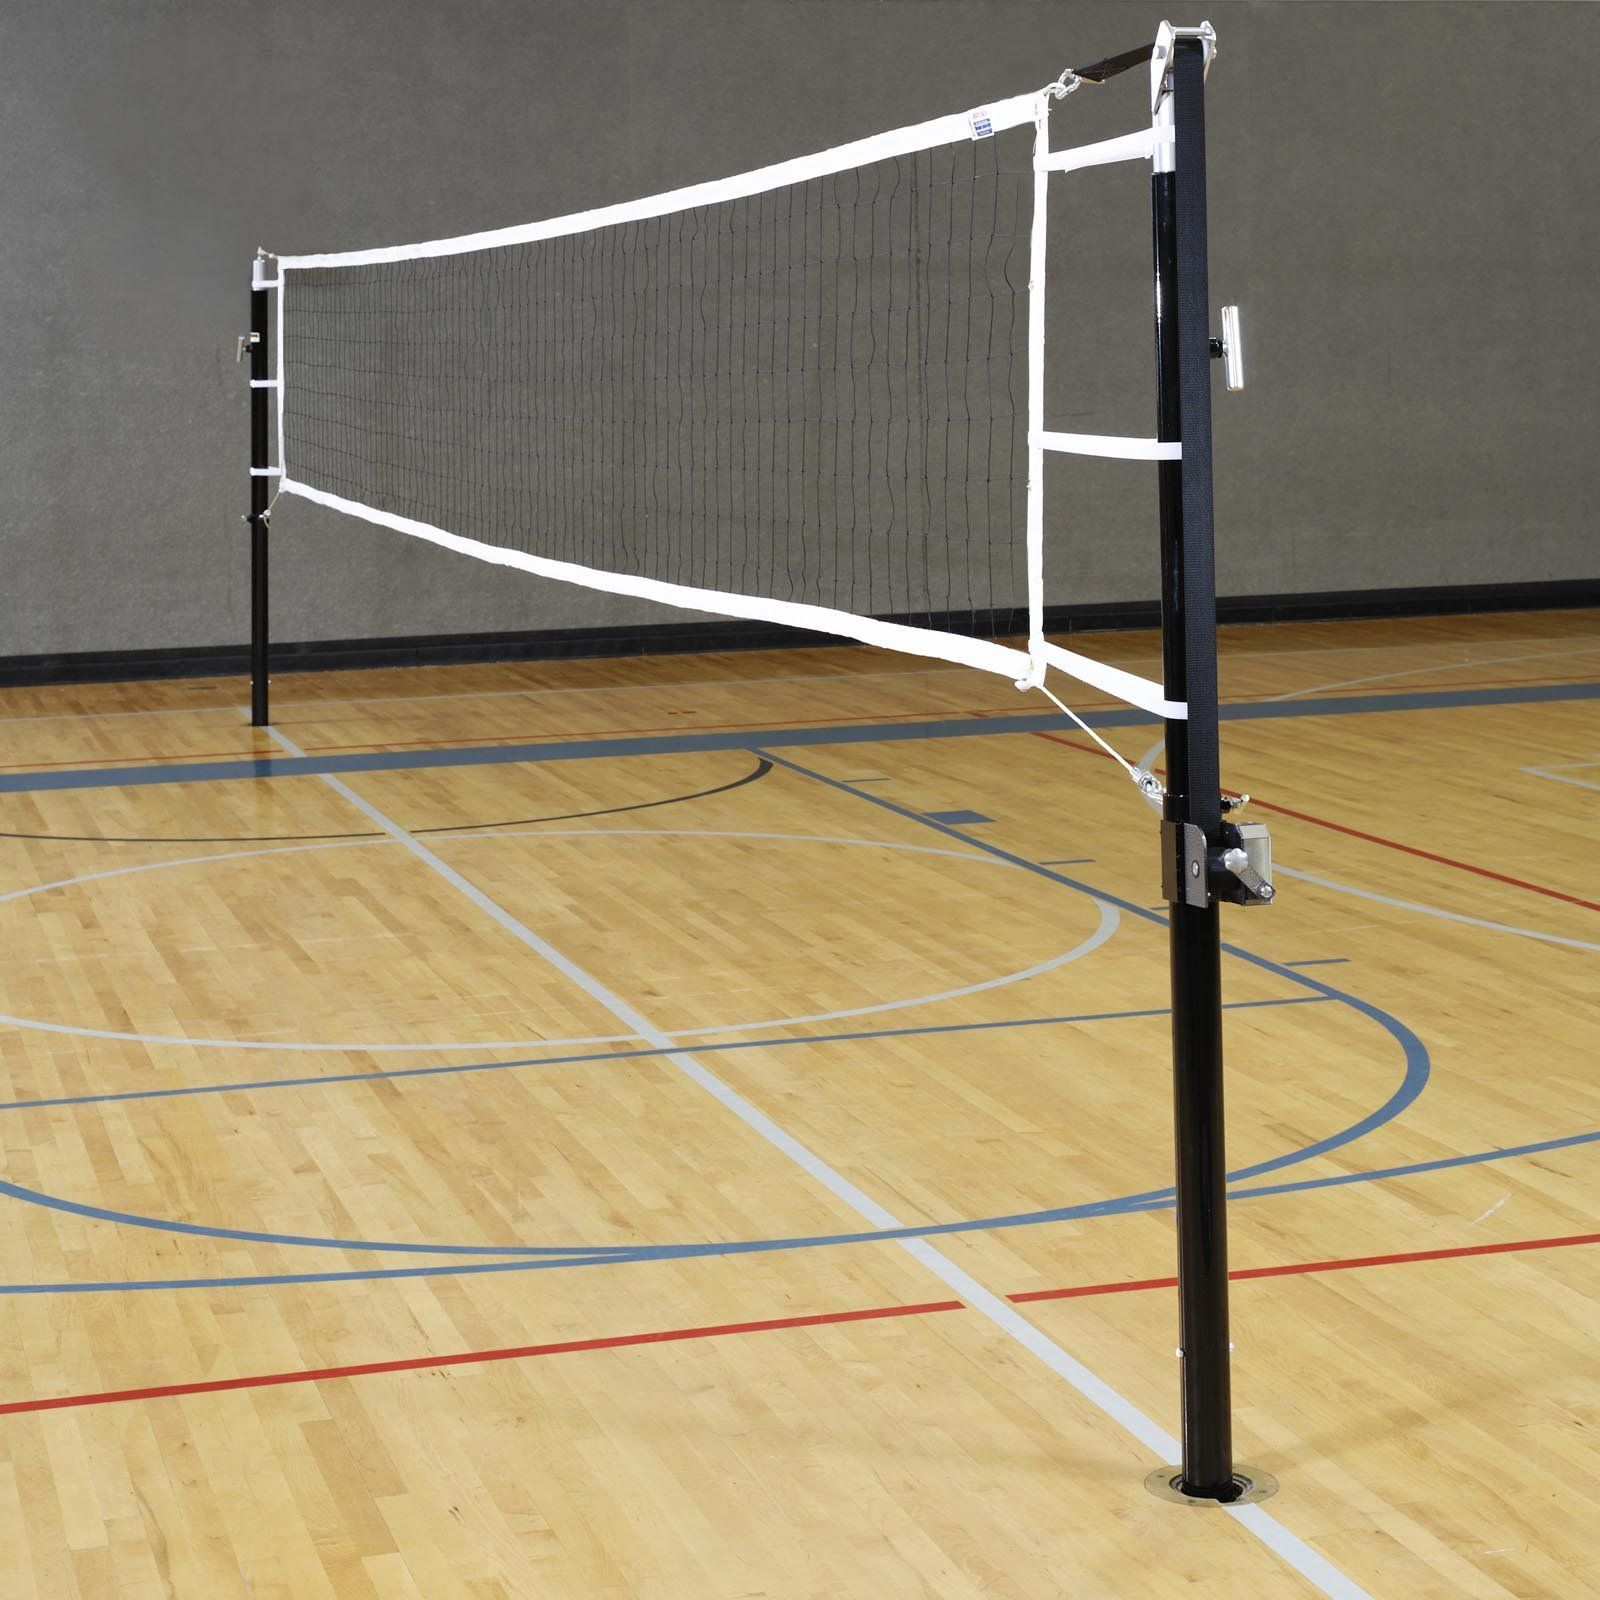 Indoor Volleyball Net Portable One So We Can Take It To The Beach Indoor Volleyball Volleyball Equipment Volleyball Net